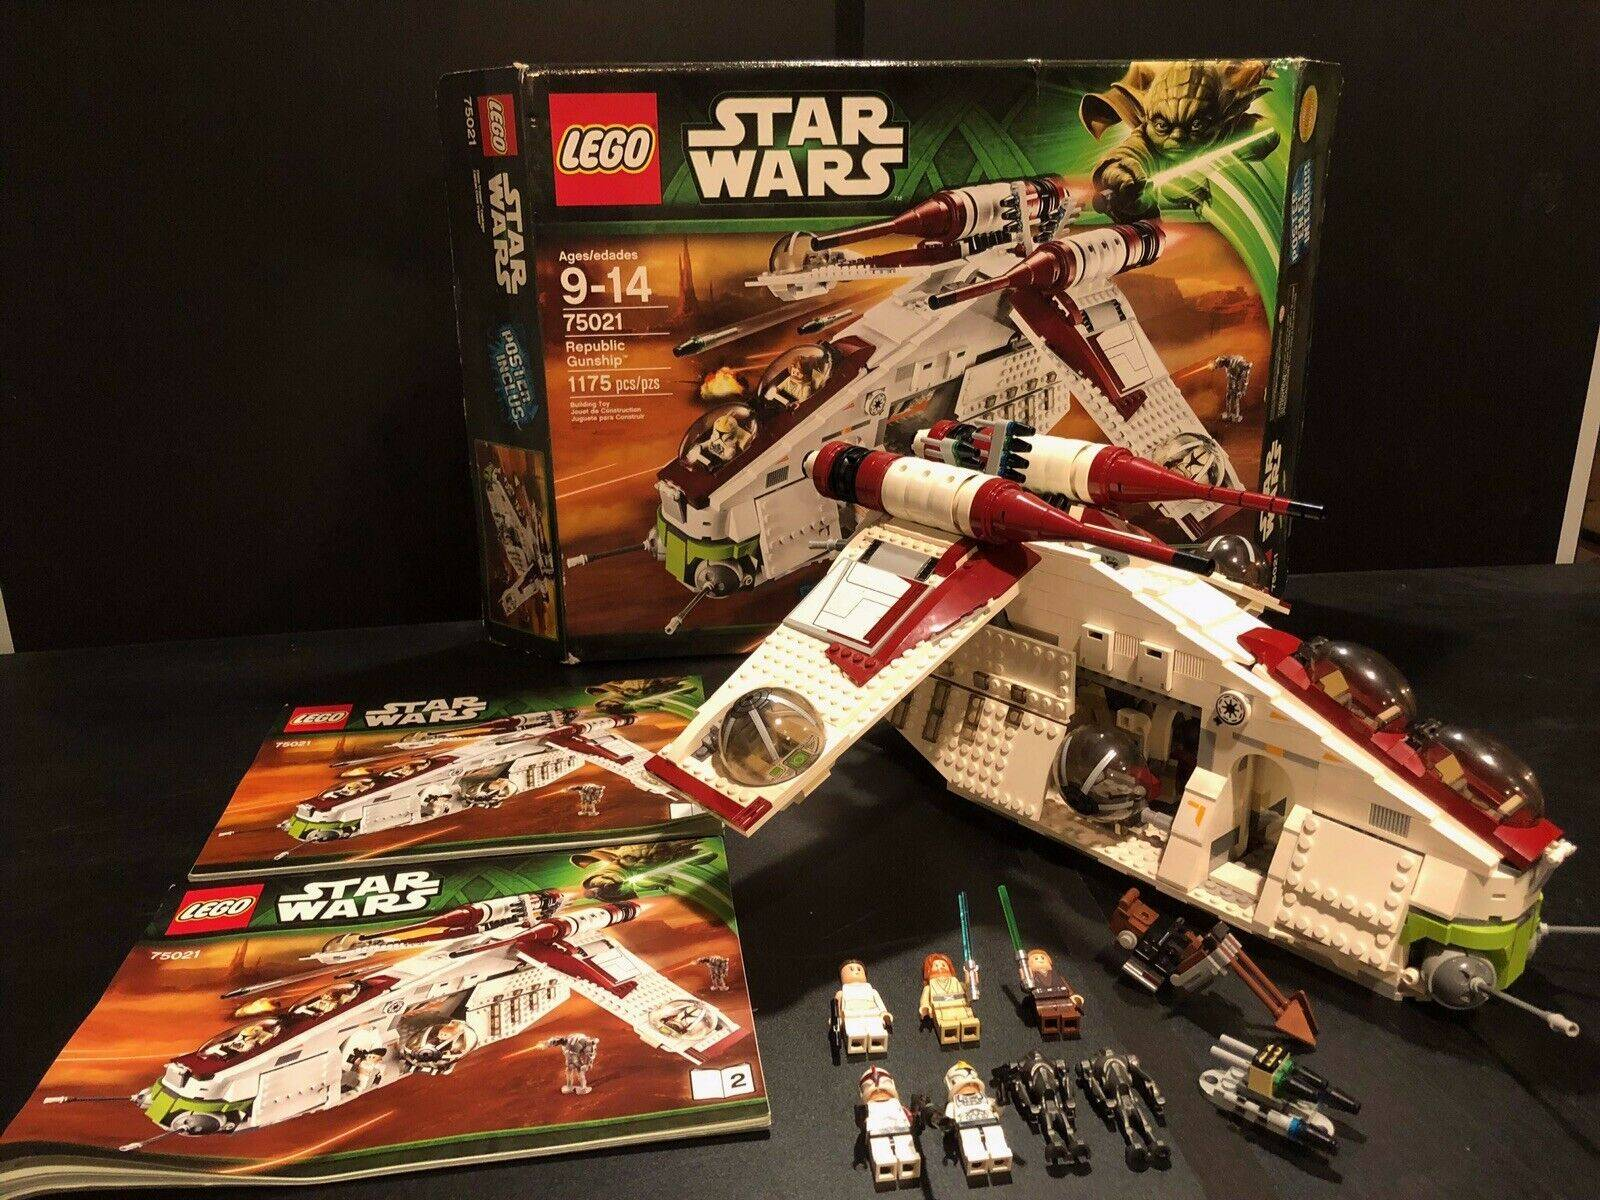 lego 75021 instruction booklets